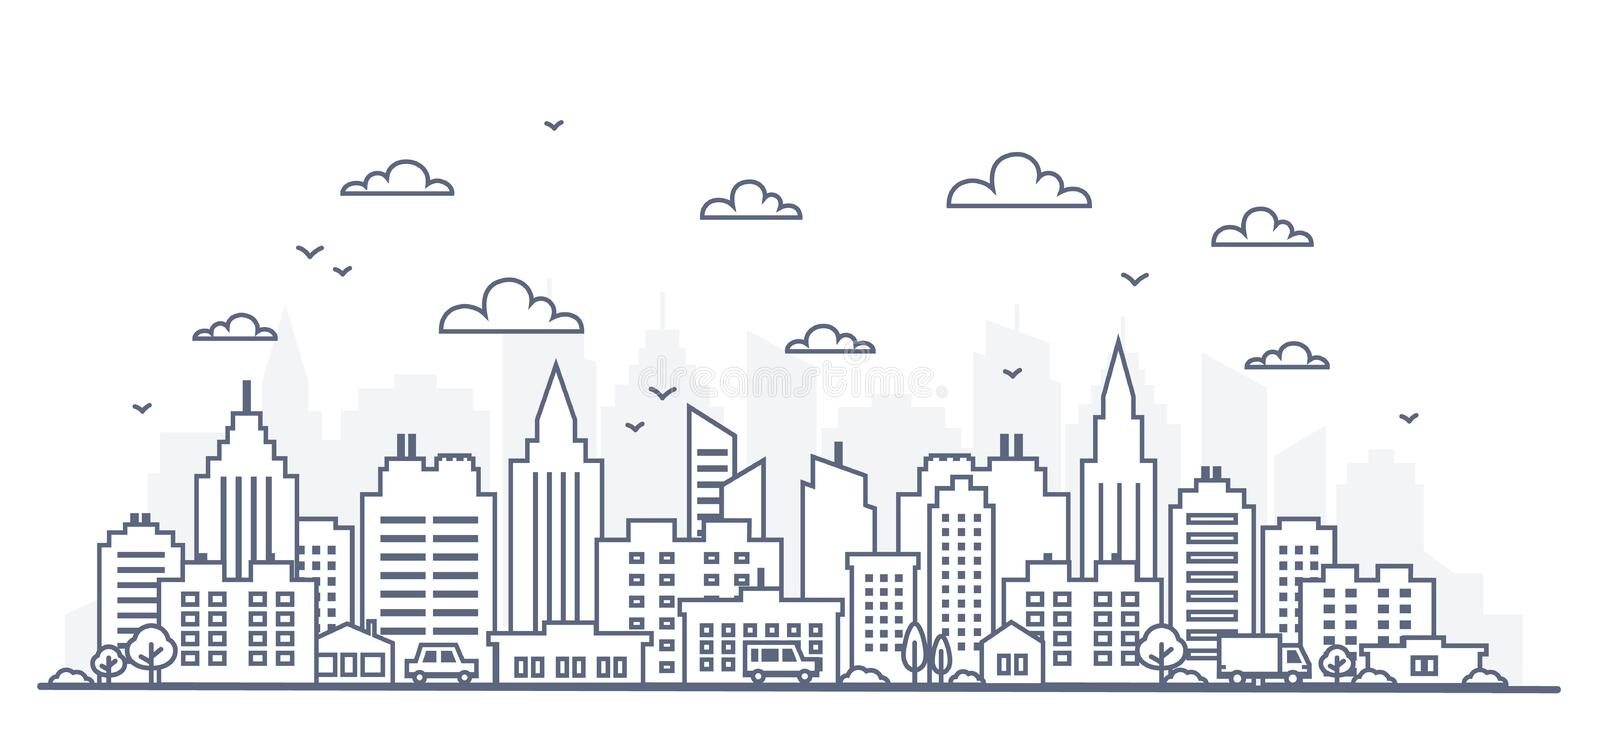 Thin line style city panorama. Illustration of urban landscape street with cars, skyline city office buildings, on light. Background. Outline cityscape. Wide vector illustration